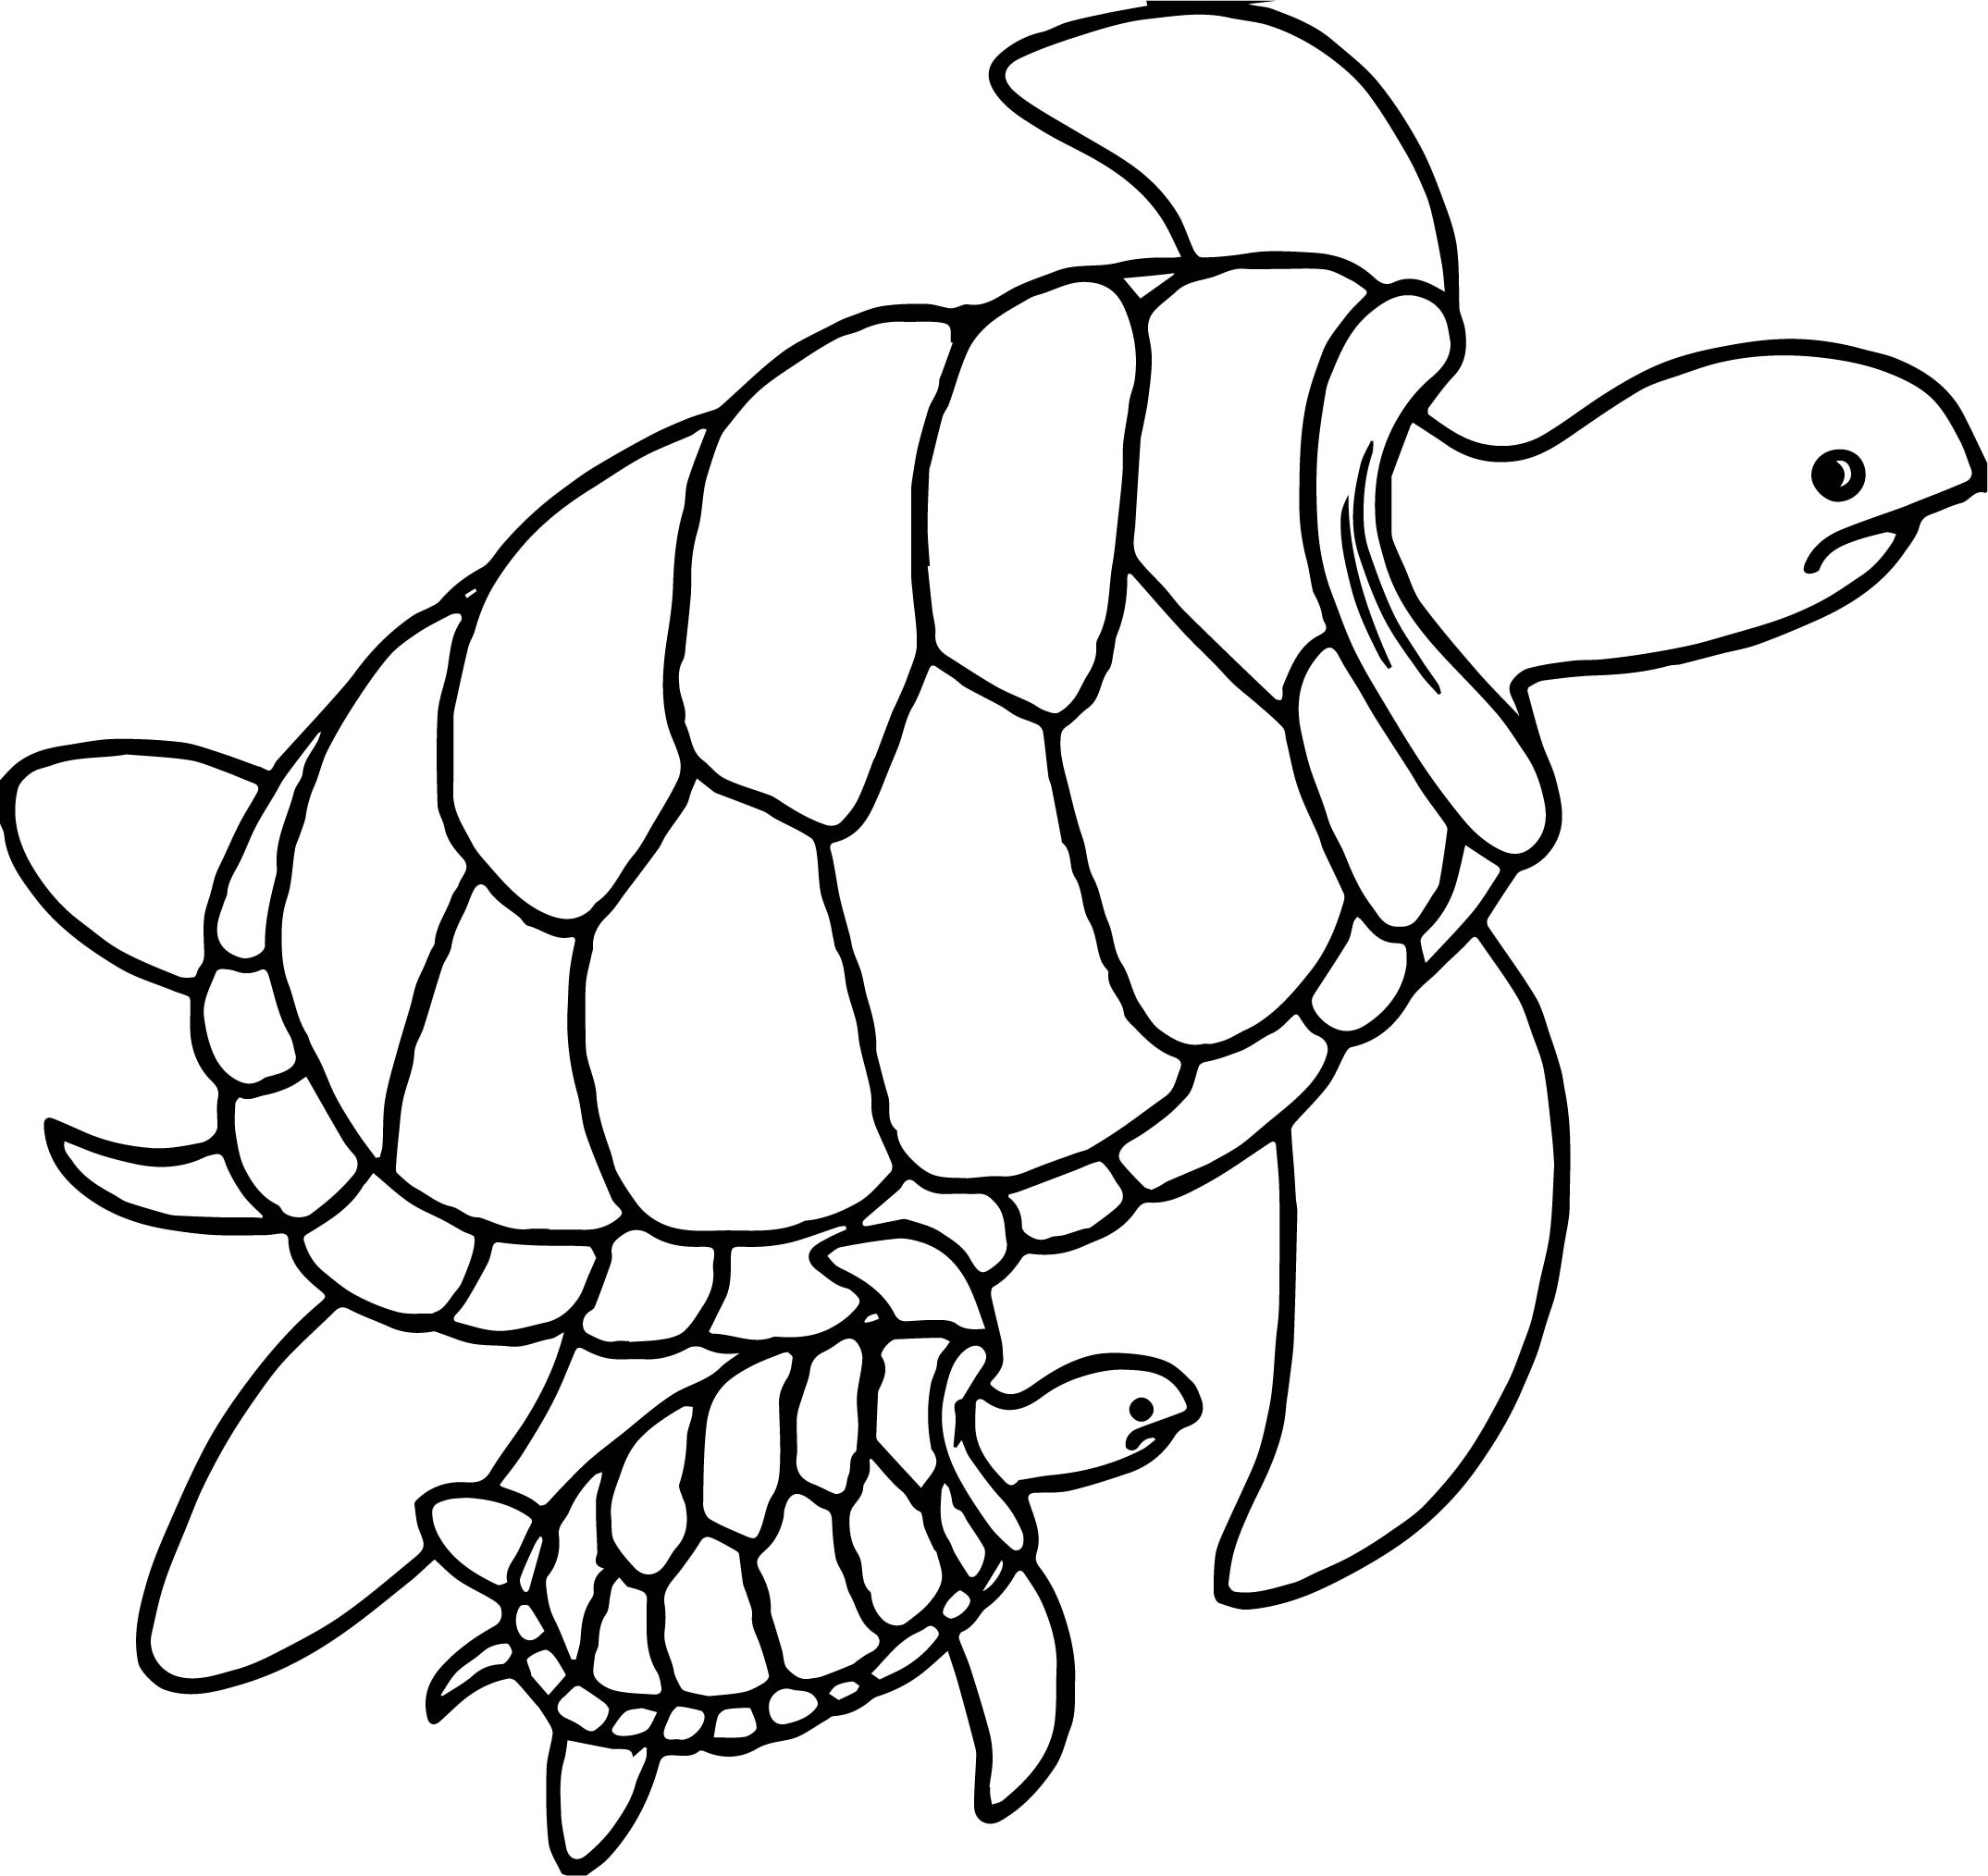 Cute Sea Turtle Mother And Baby Turtles Swimming Together Underwater Coloring Page